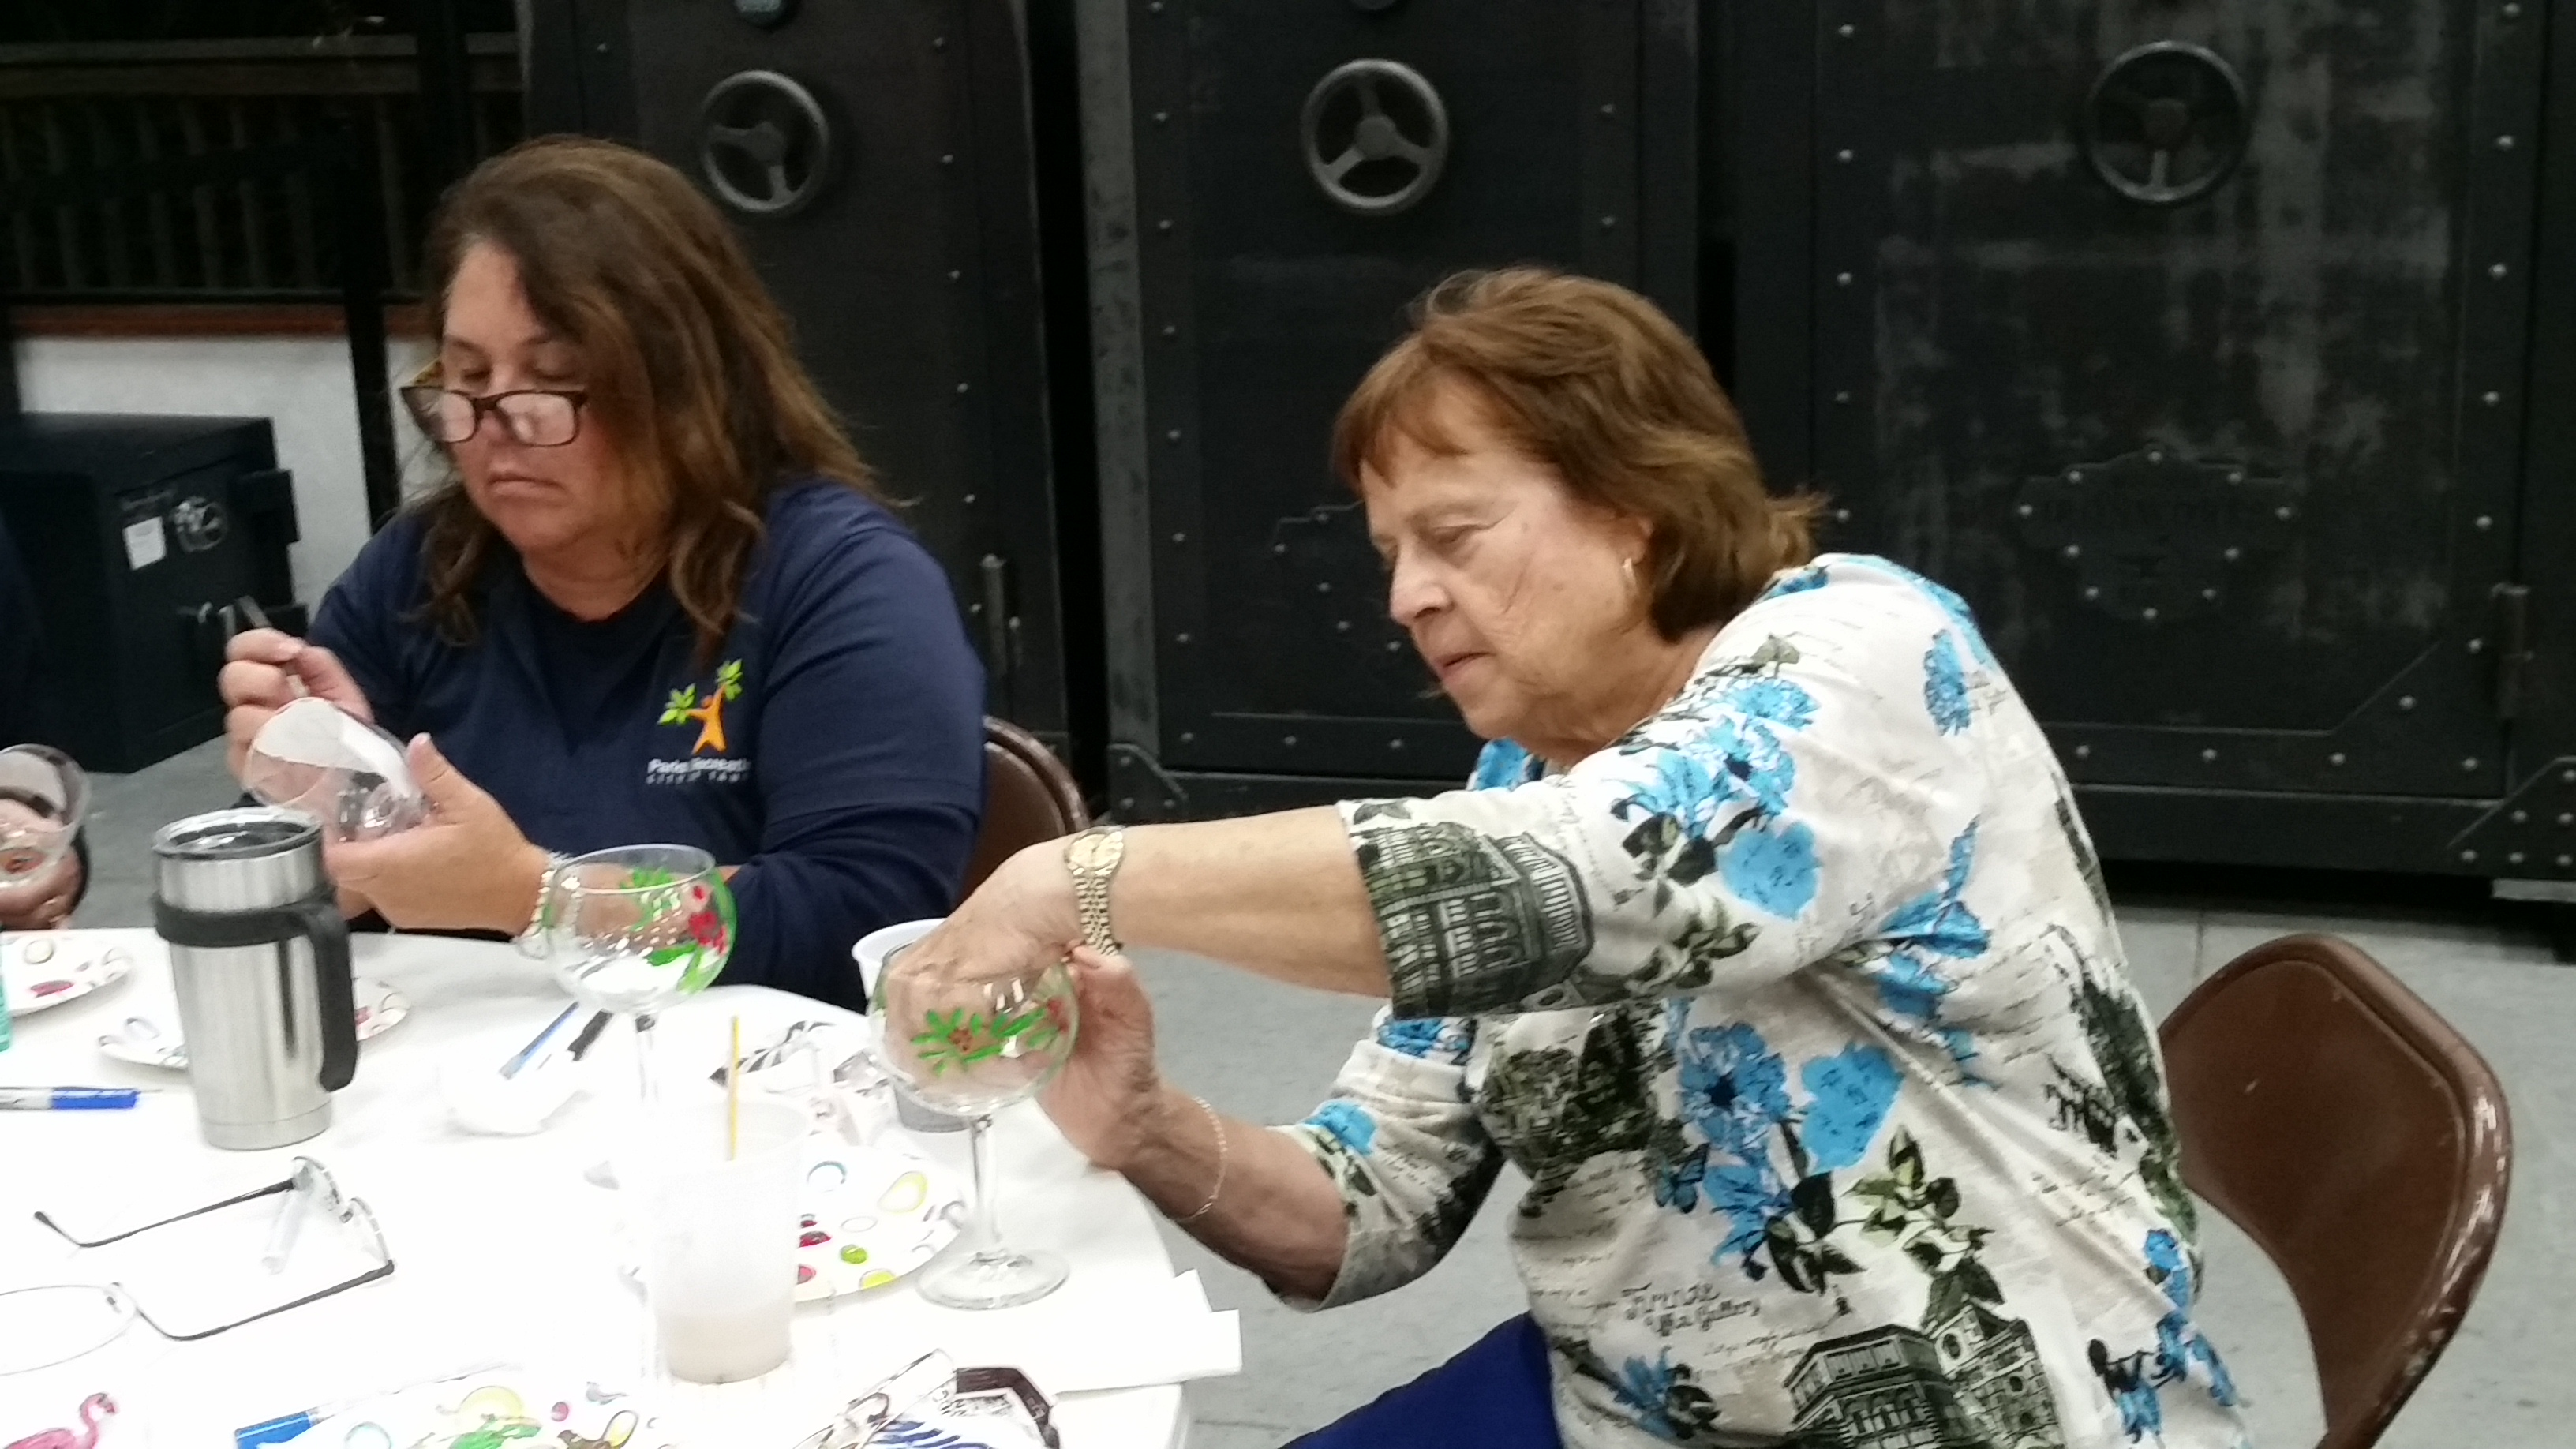 Loretta and Kay painting Christmas glasses.